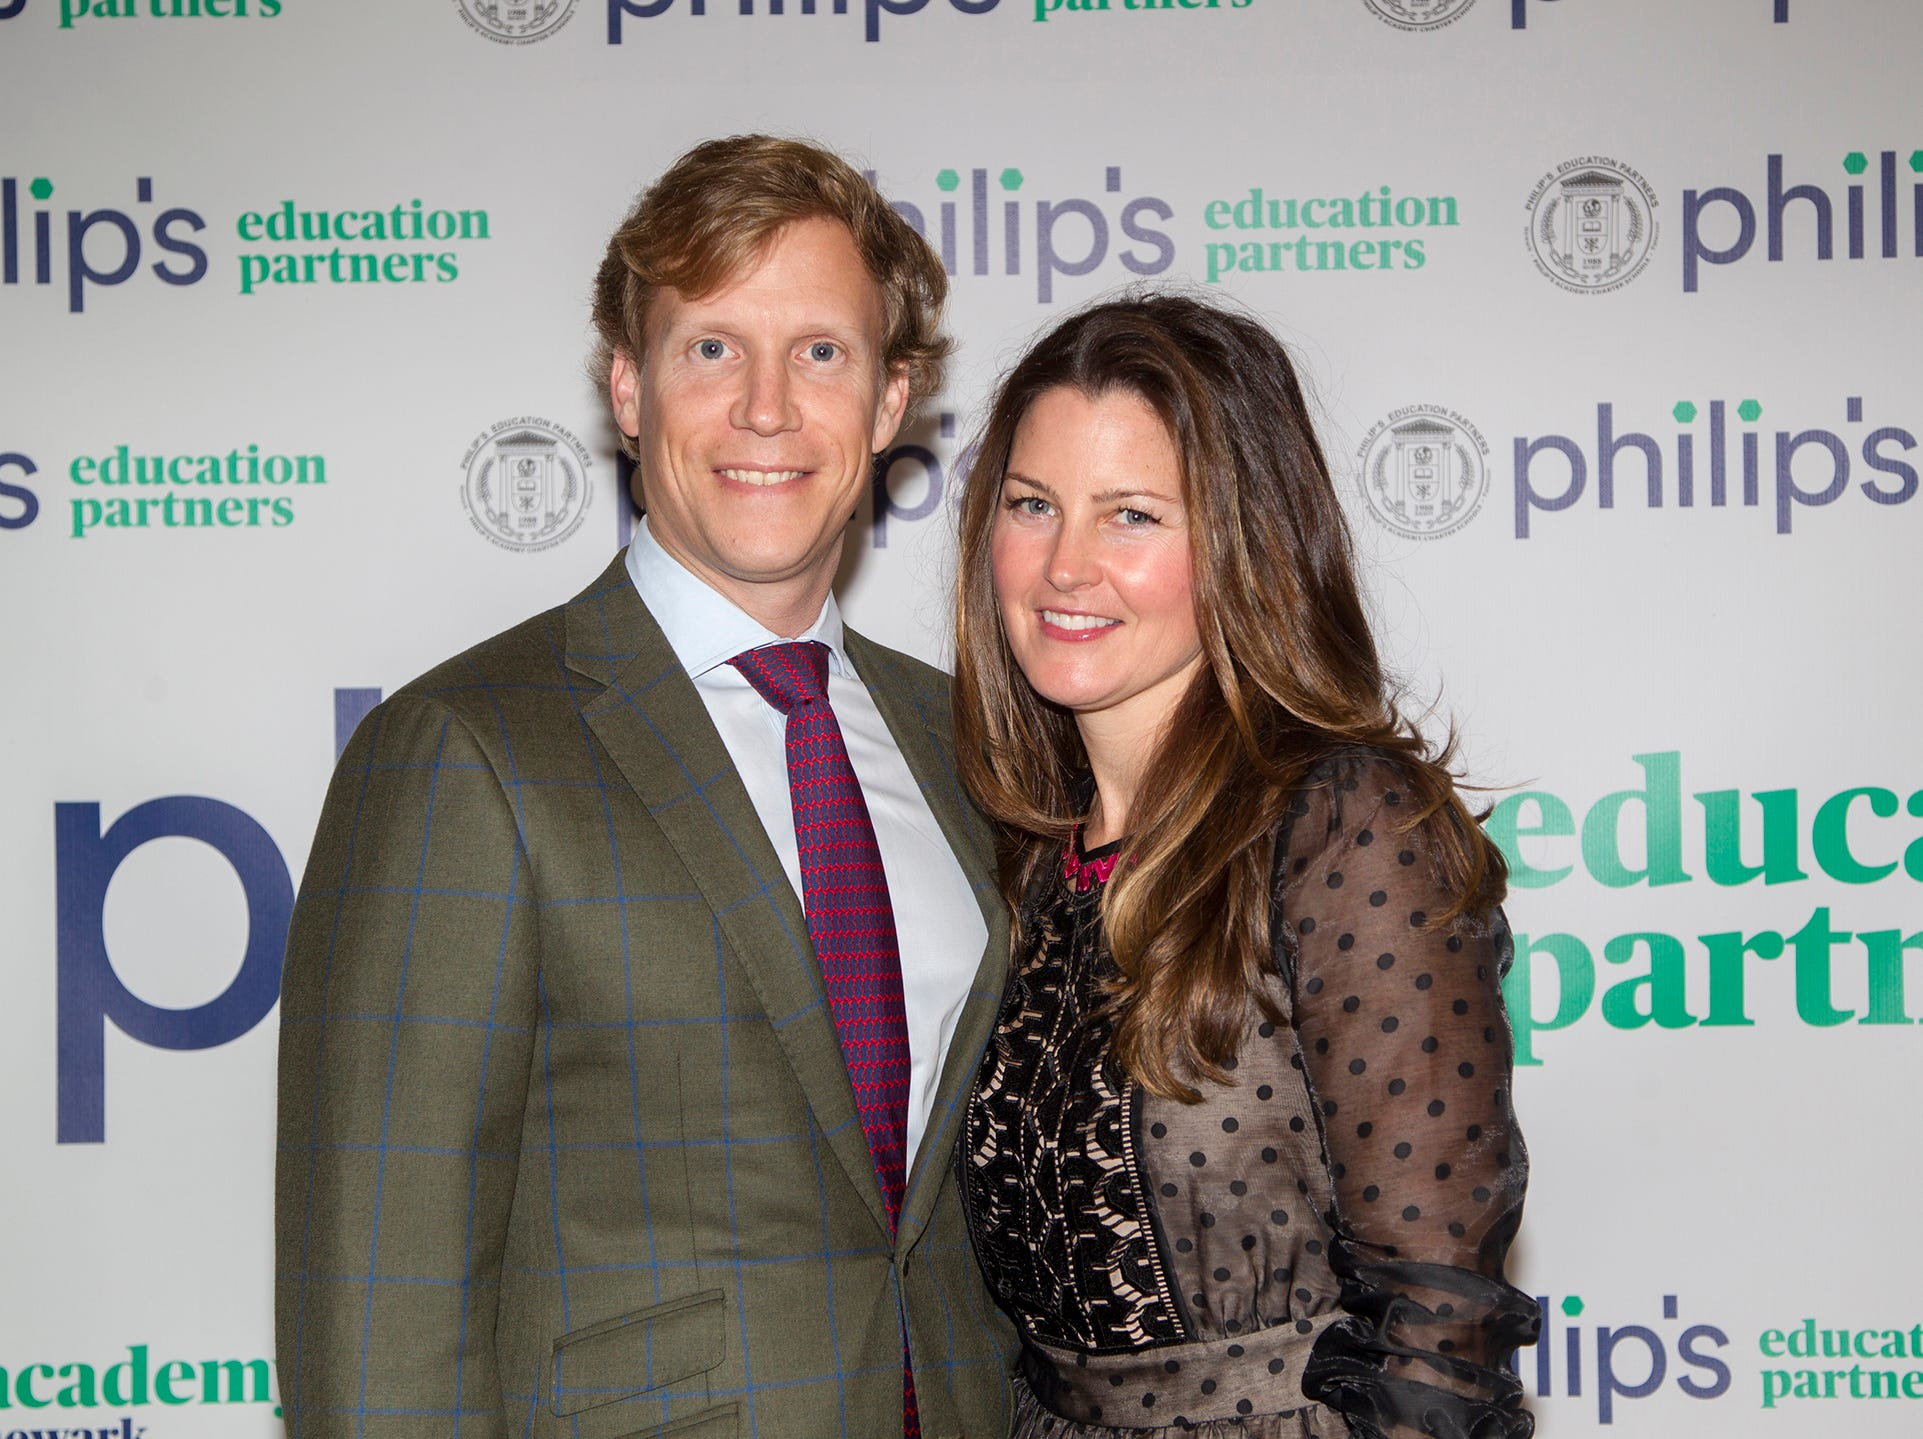 Erik and Megan Young. Philip's Education Partners host The Dream Maker 30th anniversary gala at The Mezzanine in Newark 3/29/2019.